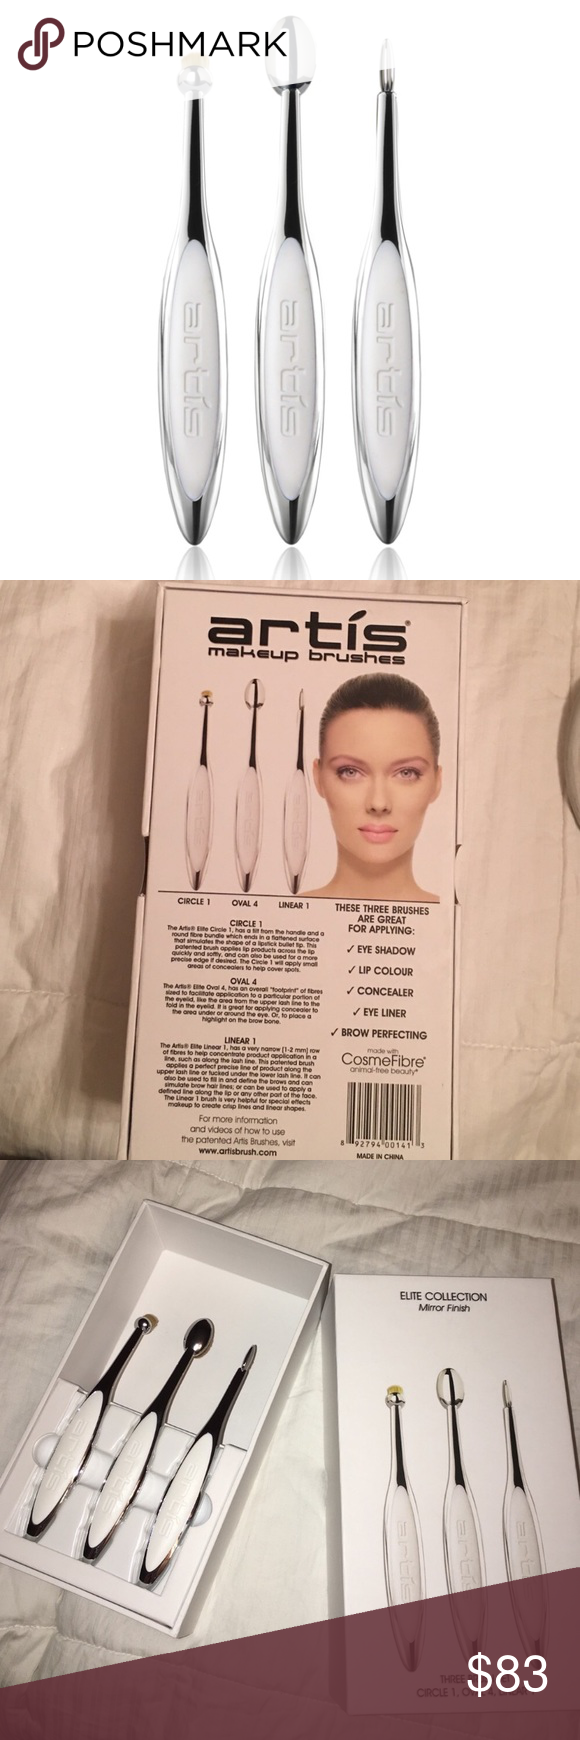 Artis Makeup brushes Used once and clean with brush